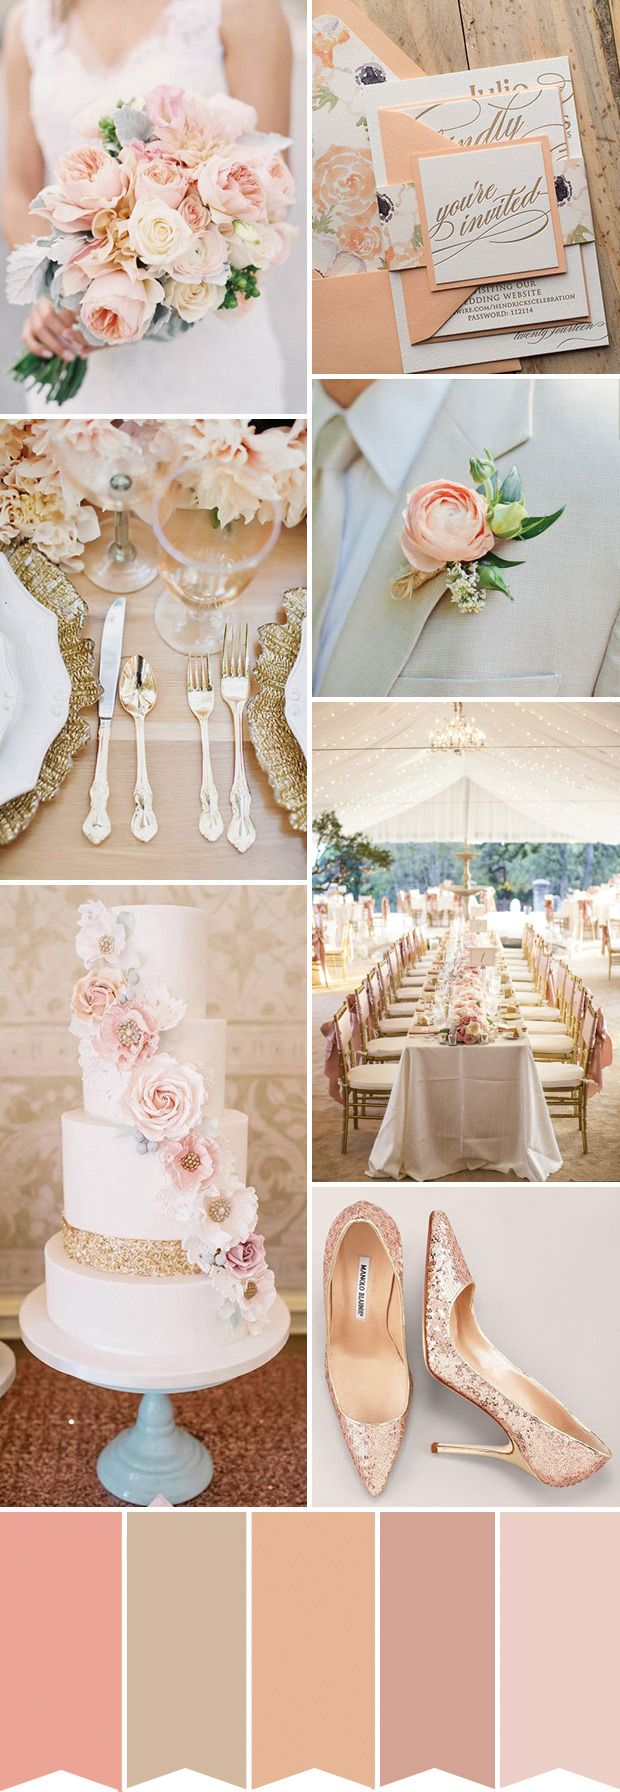 peach bellini - a sparkling peach and gold wedding palette